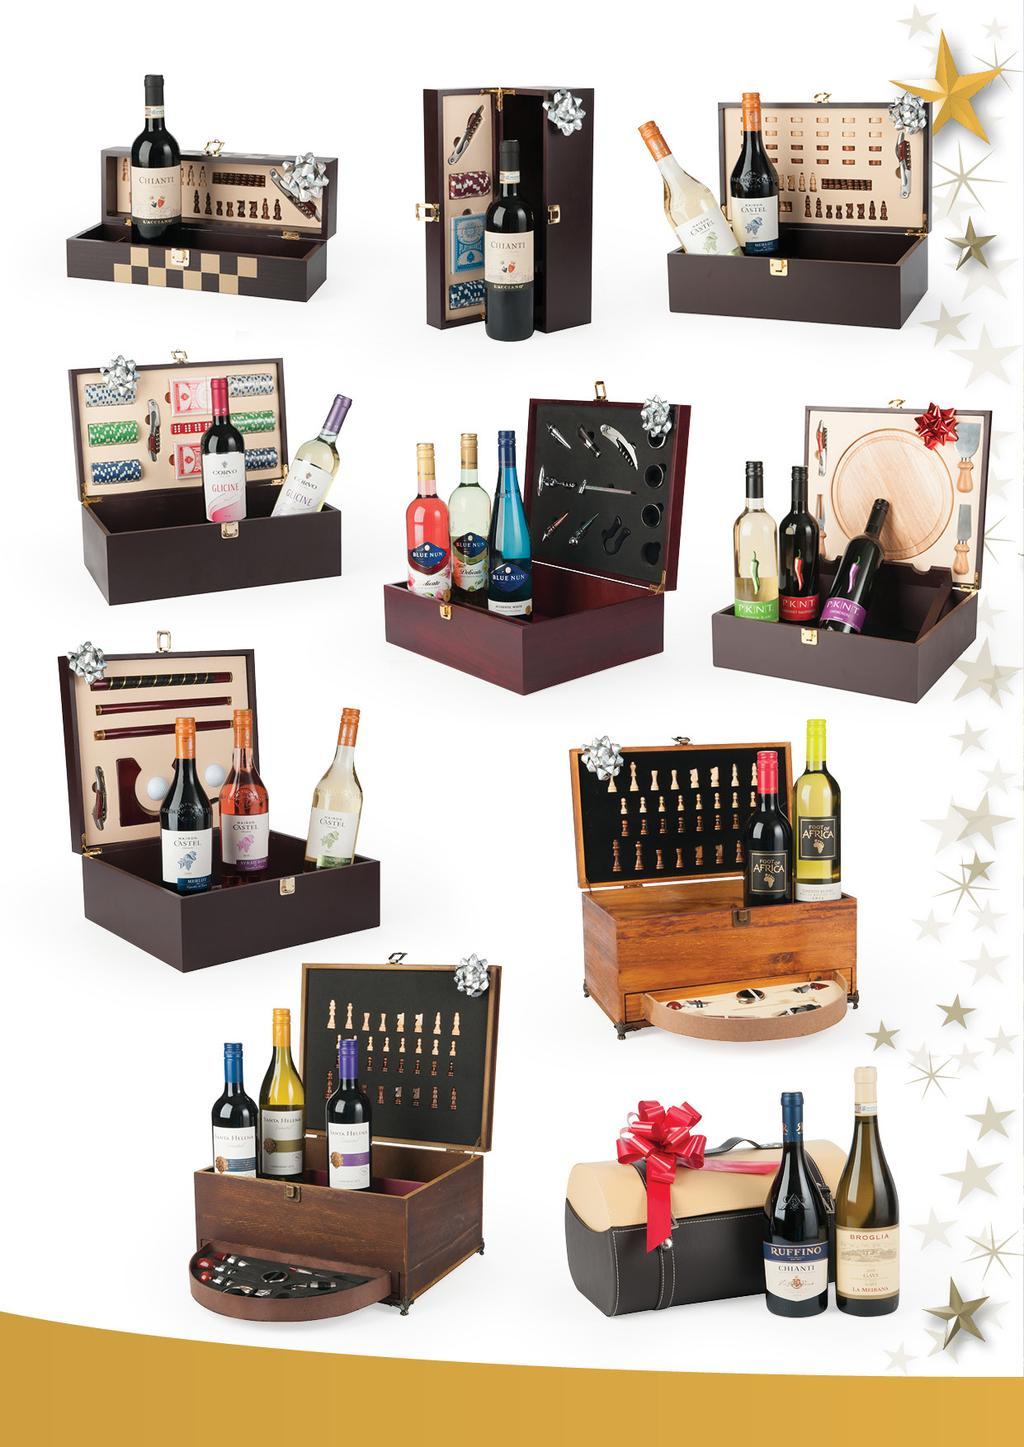 36.50 36.50 45.50 030A 62.00 030B Wine in Luxurious Wooden Boxes with Accessories 031 63.